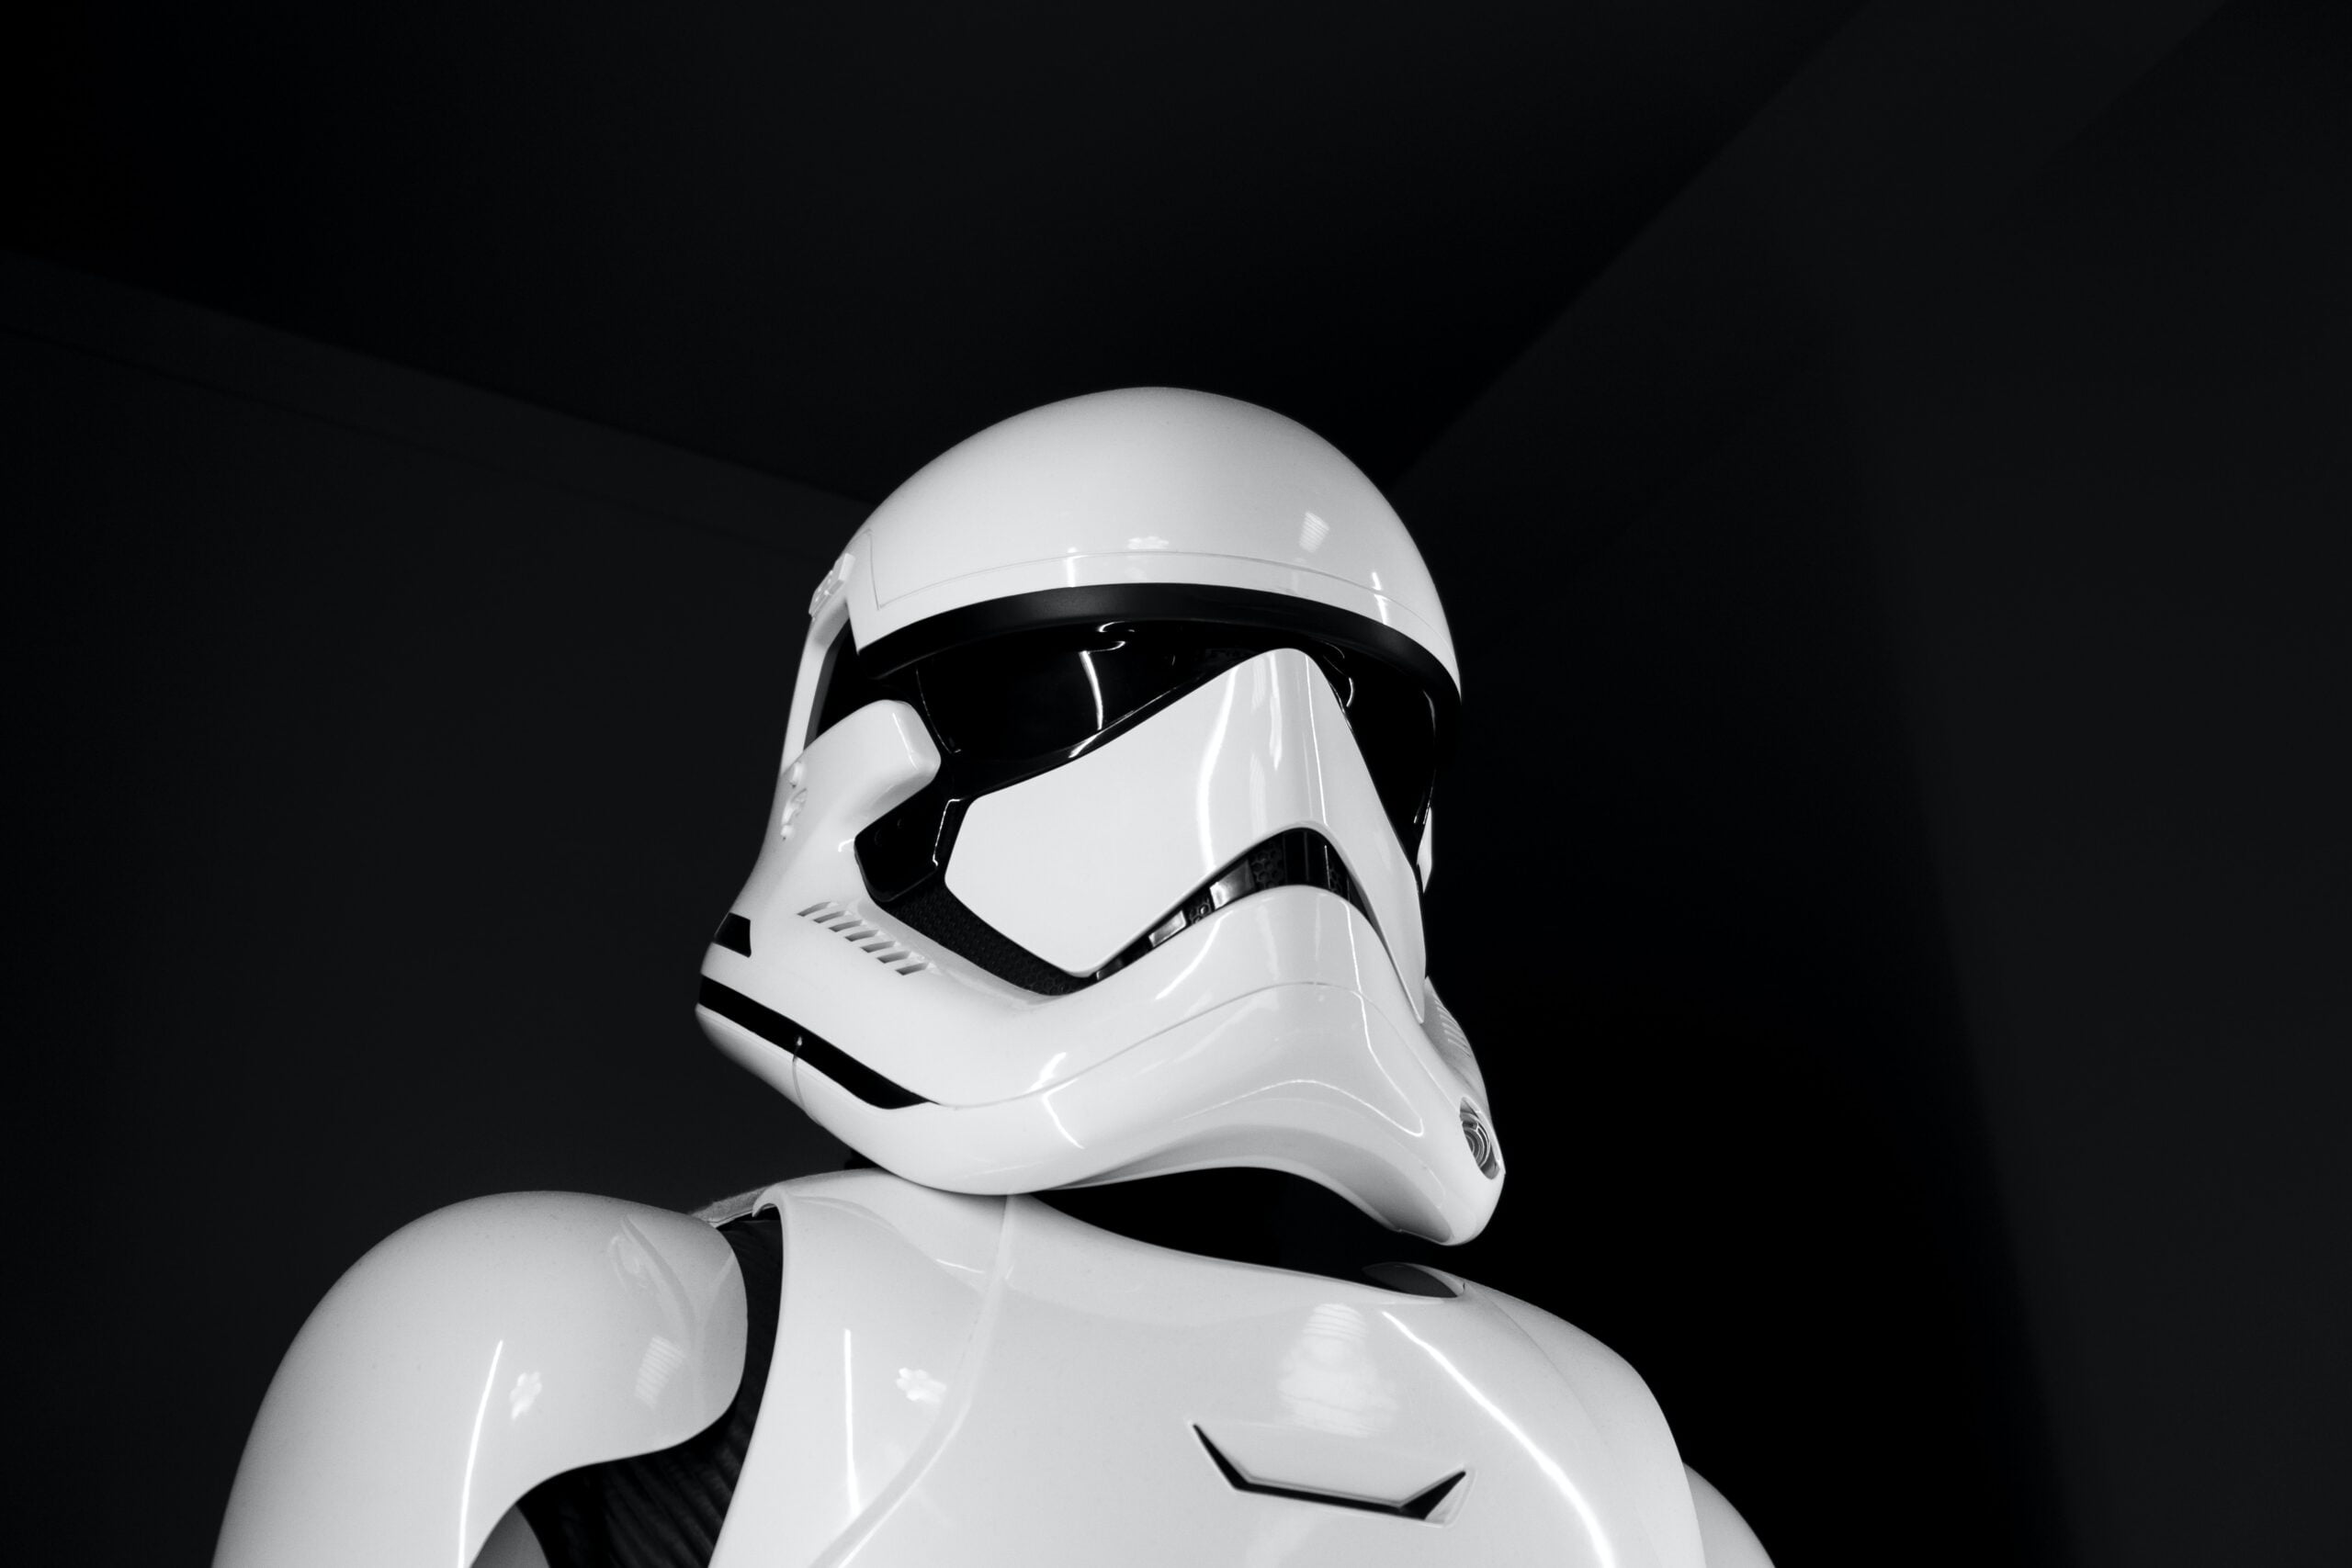 4k star wars wallpapers